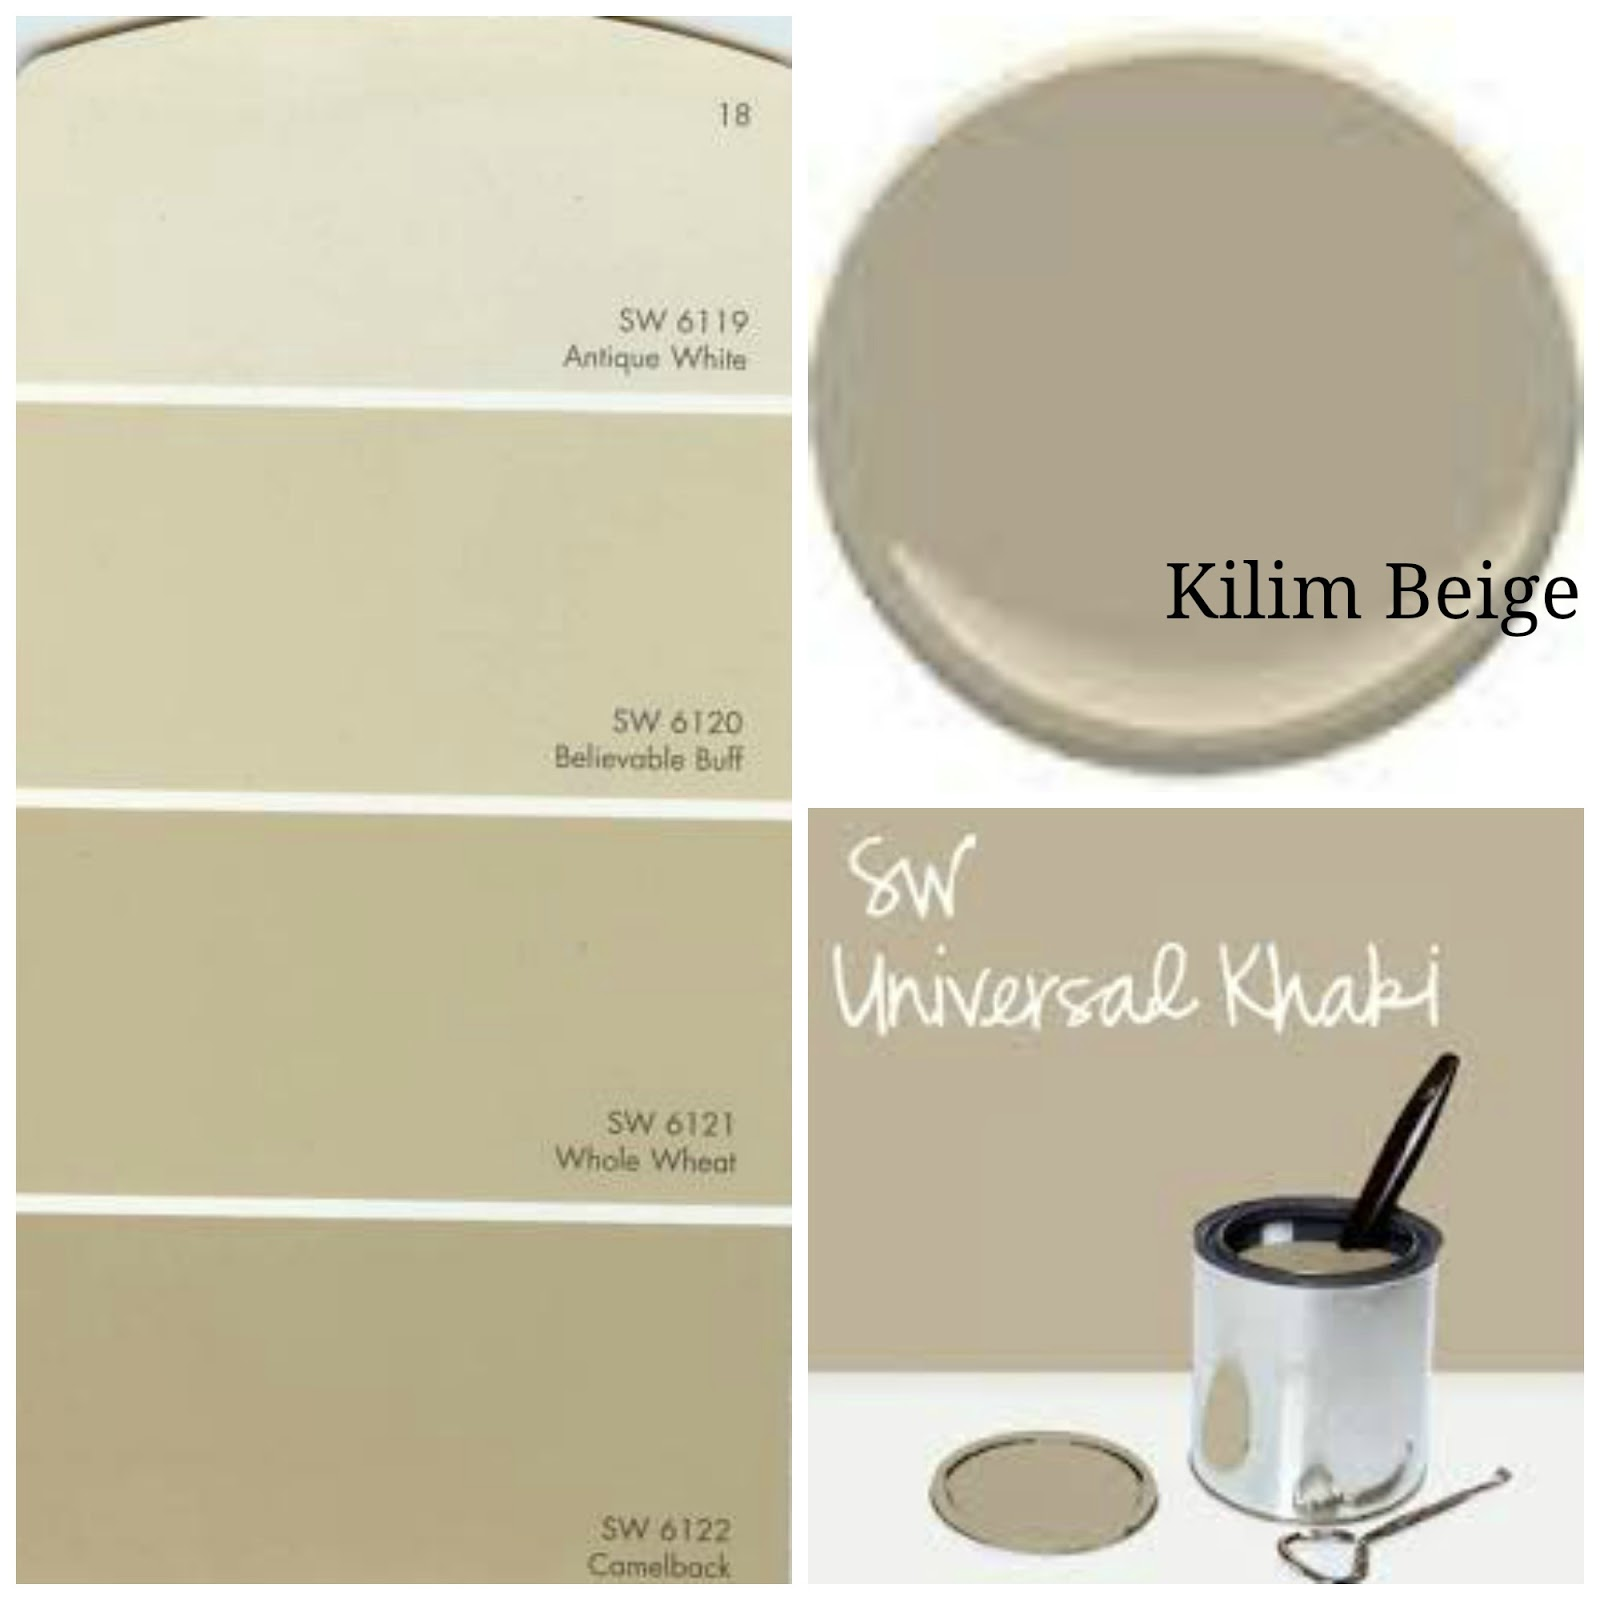 Sherwin williams believable buff - Painting Your Walls Ceiling And Trim All The Same Color Can Help Expand Your Space Visually And Give An Illusion Of Higher Walls